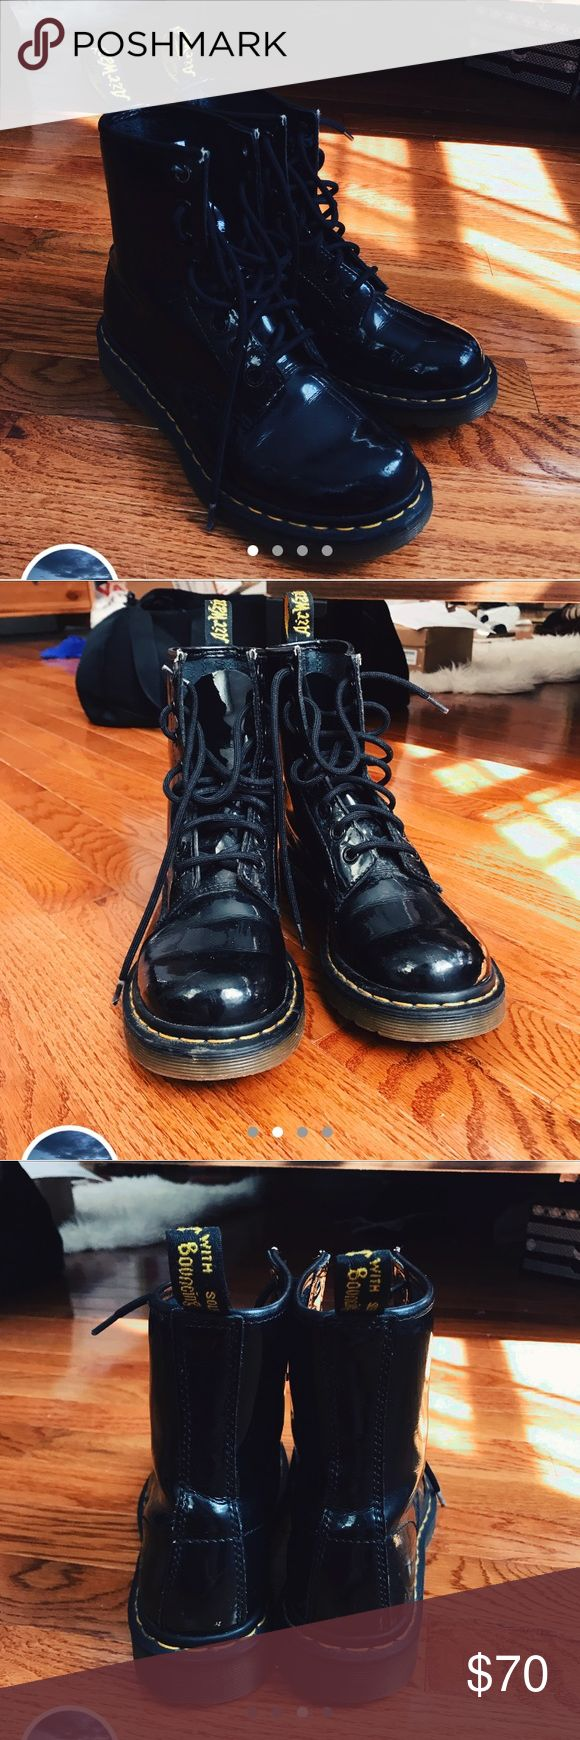 Dr Martens Dr Martens Airwair patent leather boots - in good condition - EU 37/ US 6 Dr. Martens Shoes Combat & Moto Boots